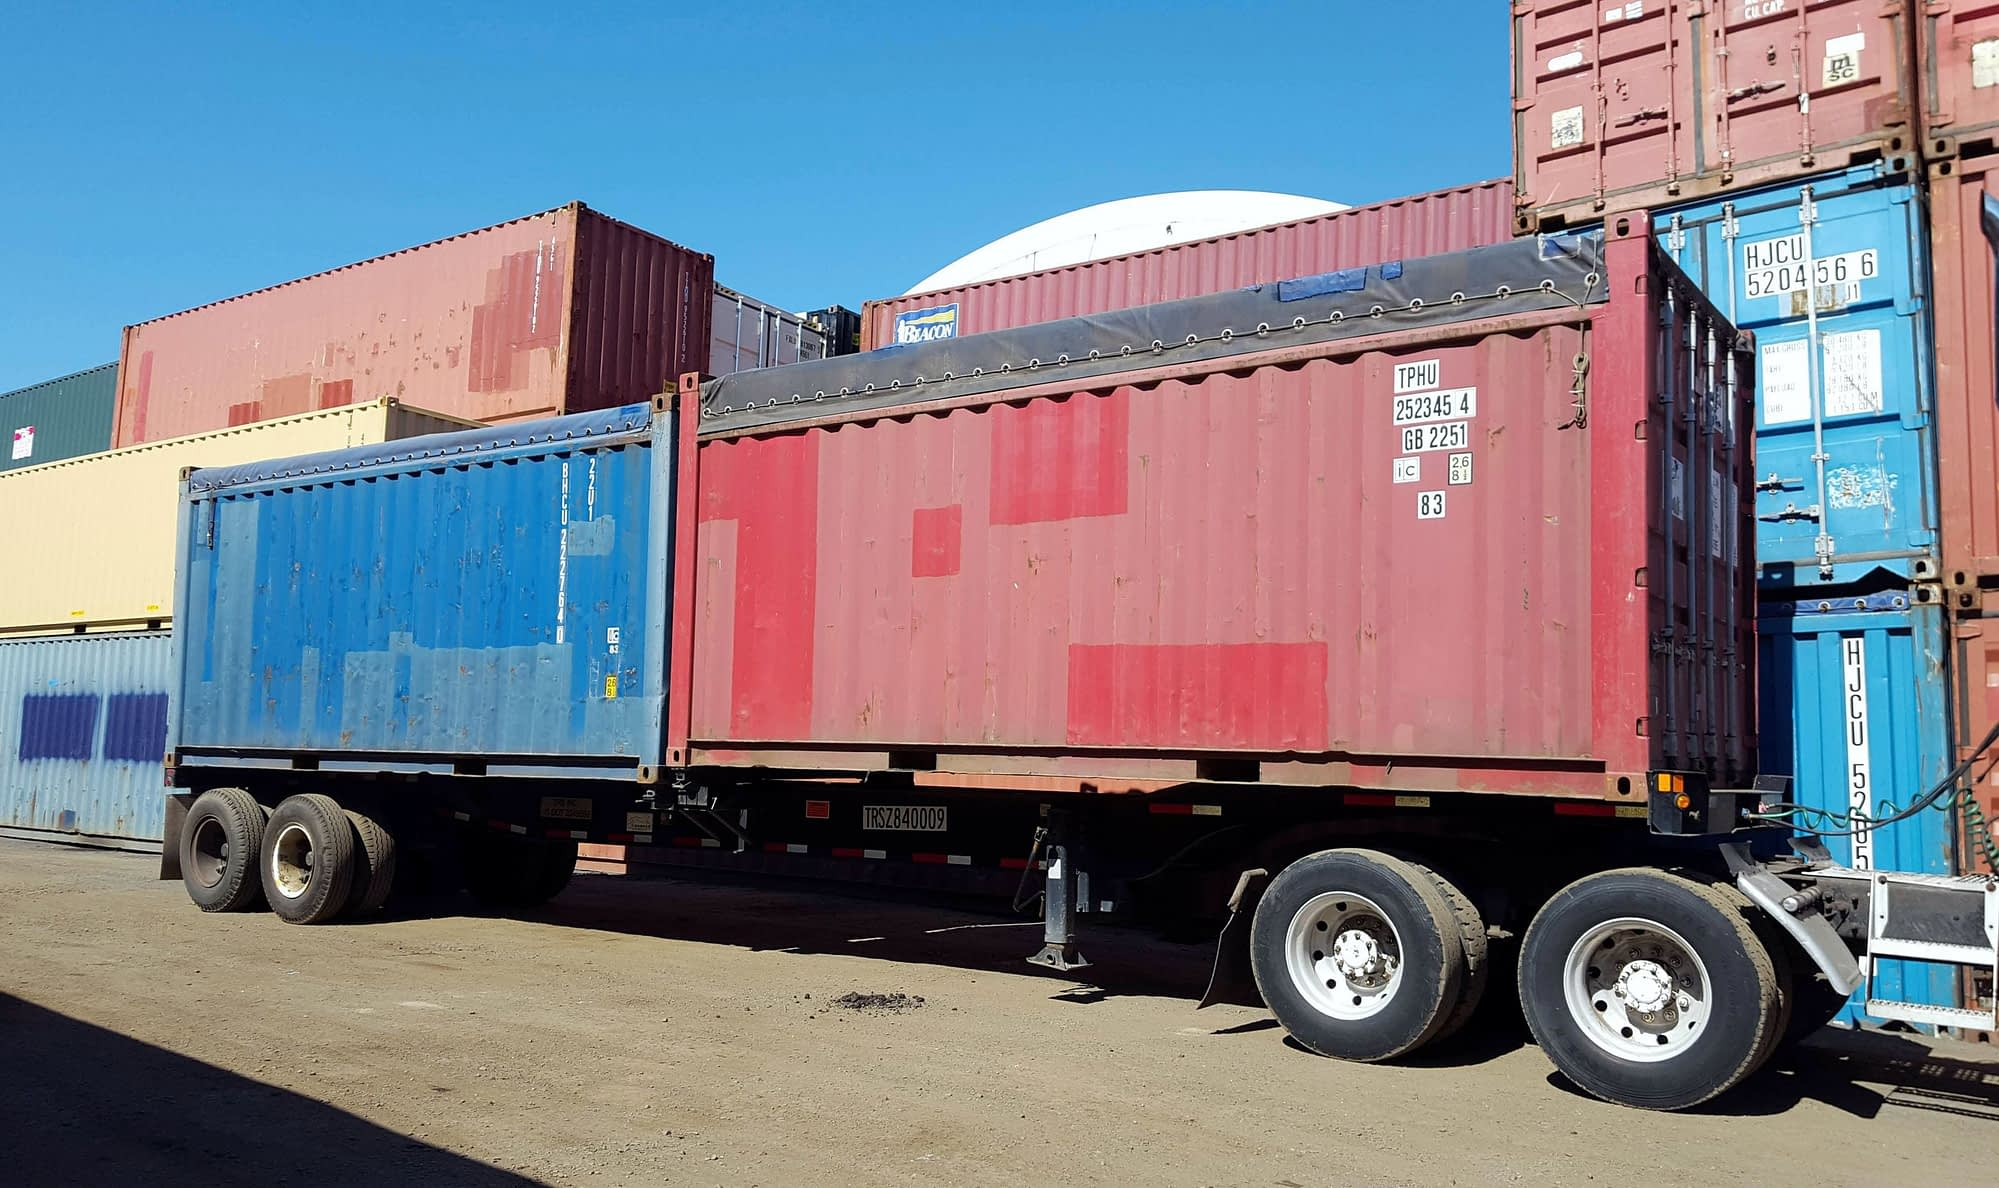 TRS sells opentop shipping containers for domestic use or export